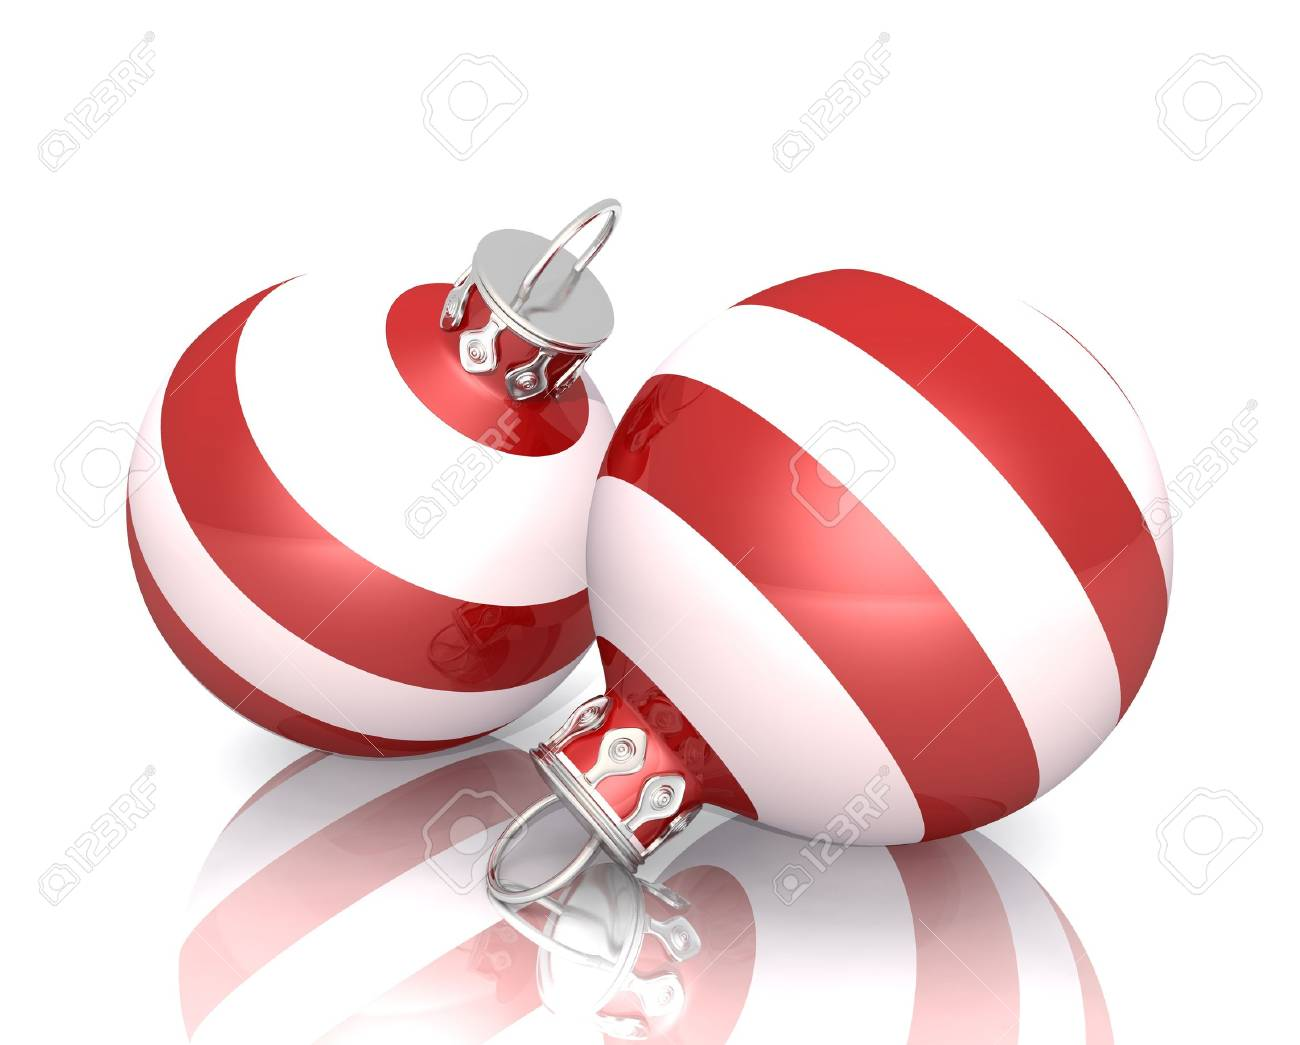 Christmas Ornaments  Red White Striped 2x 02 Stock Photo  13920146